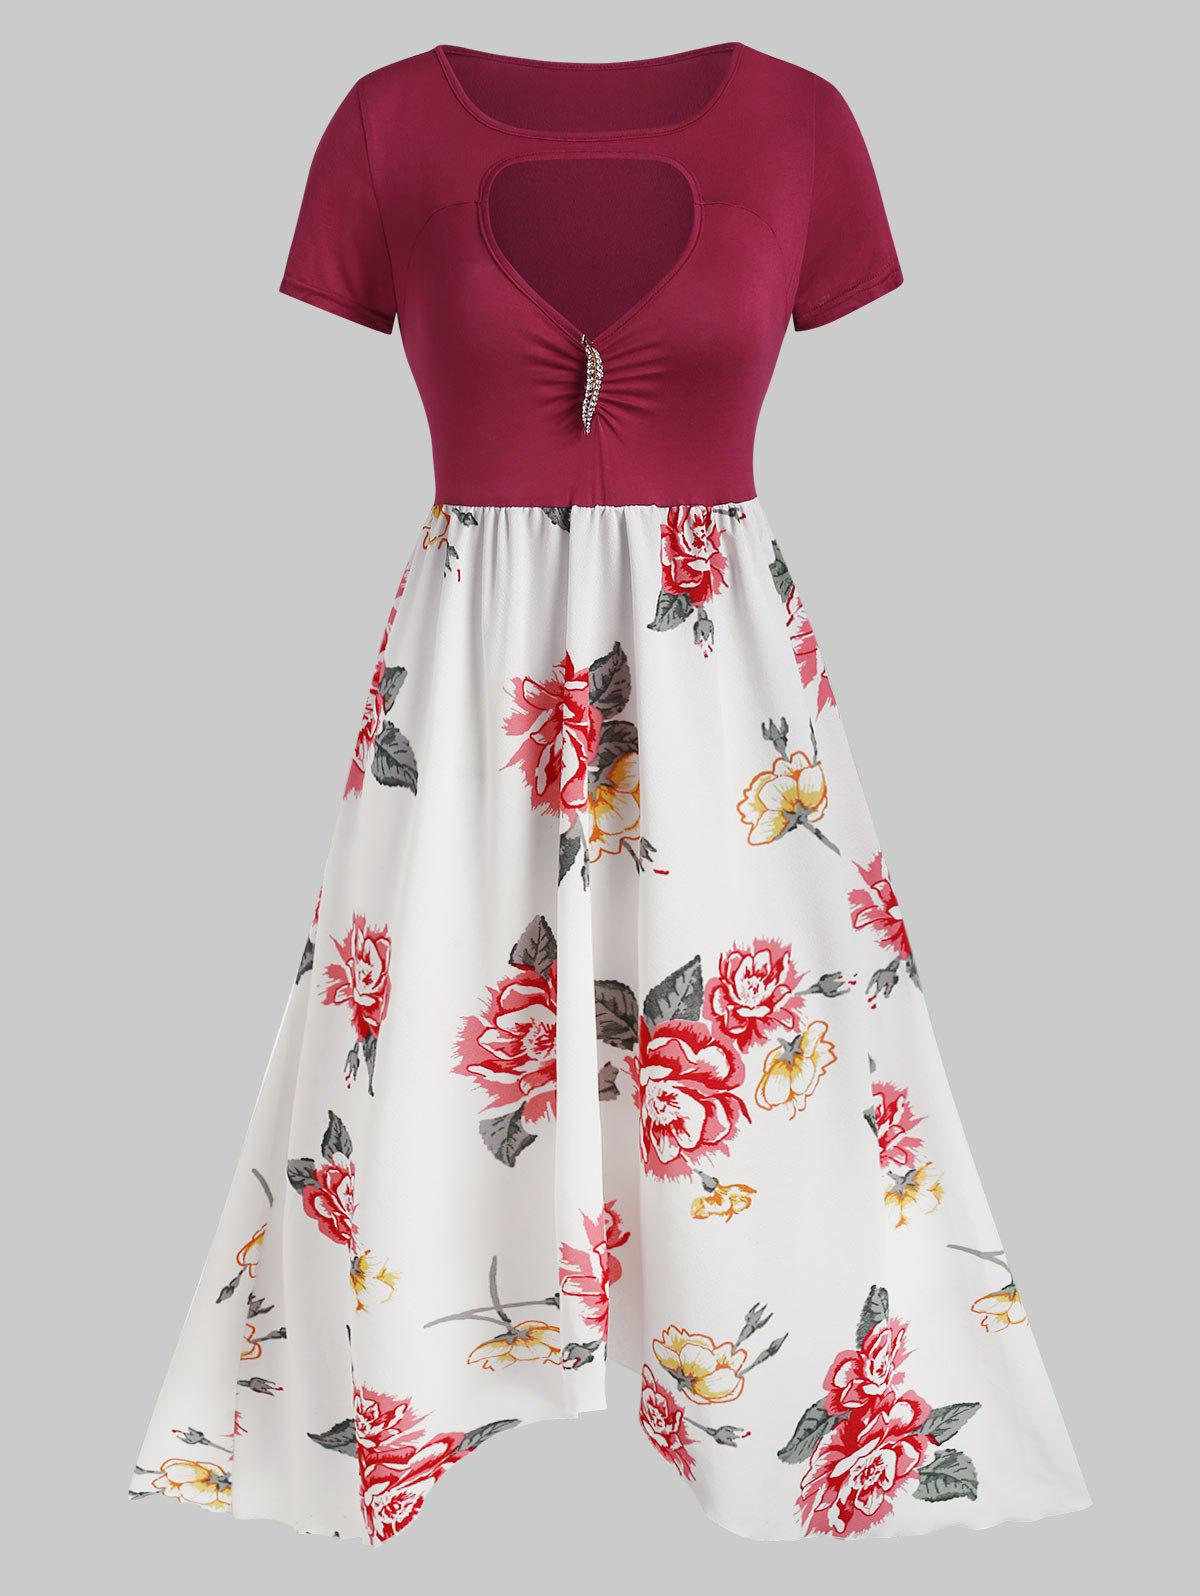 Flower Print Cut Out Brooch Embellished Dress - RED 2XL